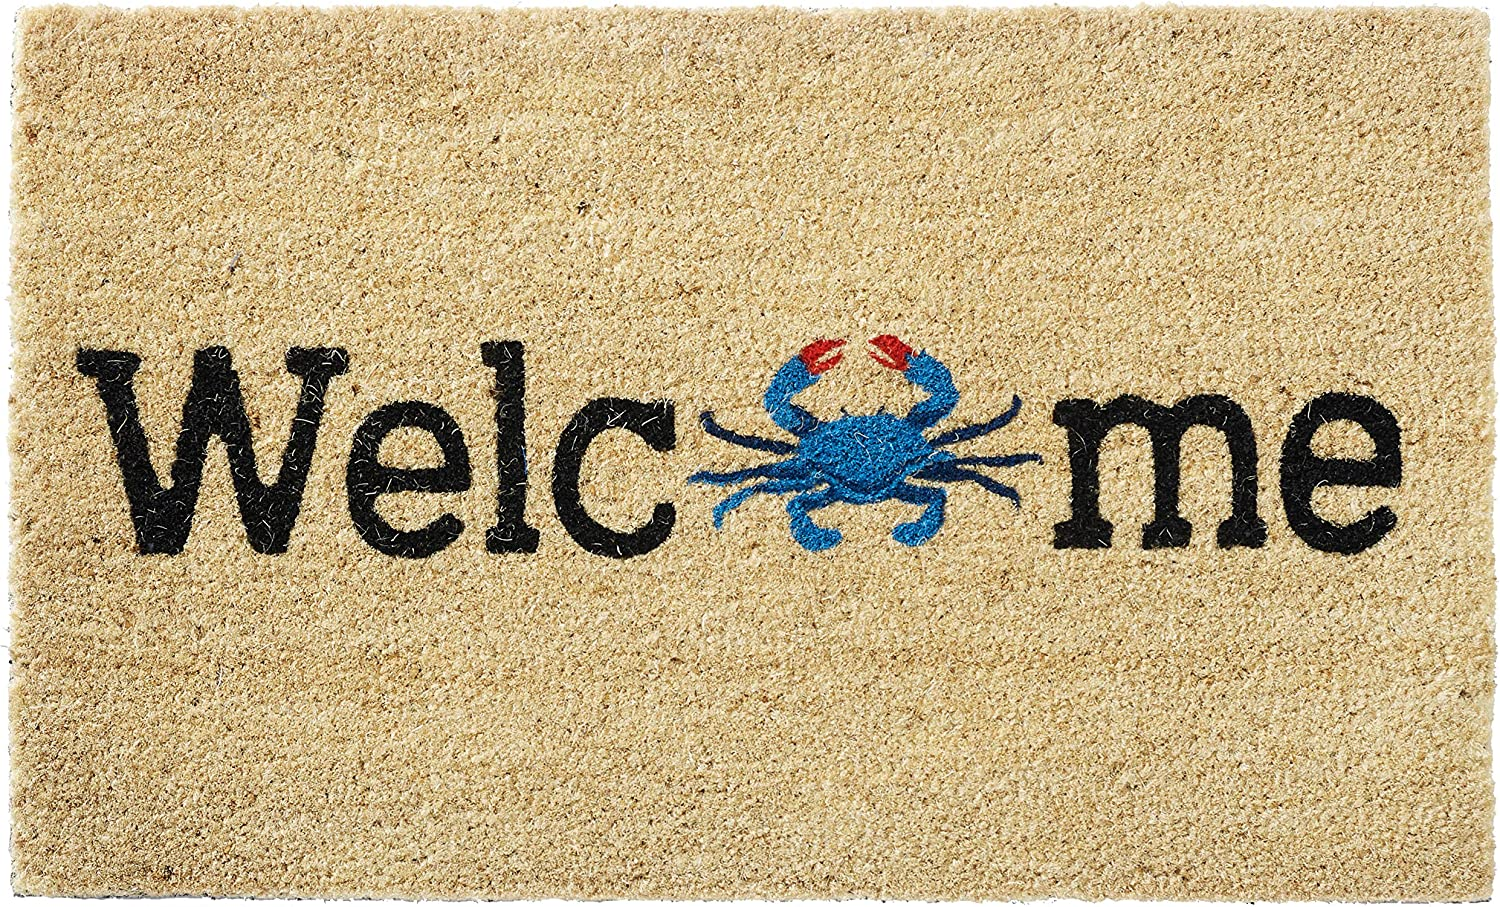 HF by LT Welcome O Crab 100% Coir Doormat, 18 x 30 inches, Naturally Durable, PVC-Backing, Sustainable